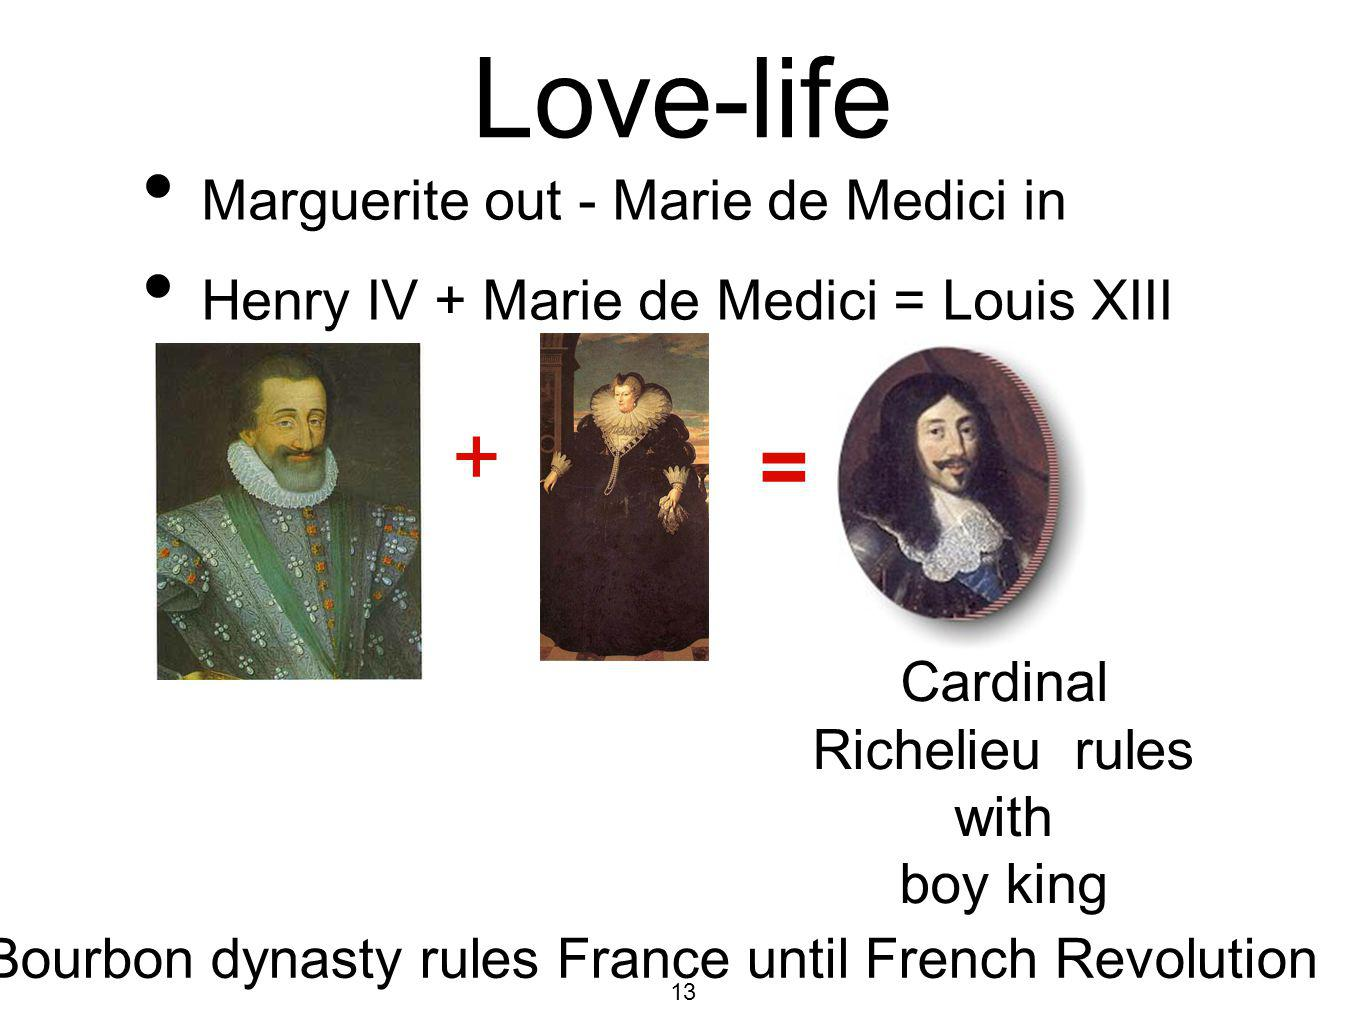 Love-life + = Marguerite out - Marie de Medici in